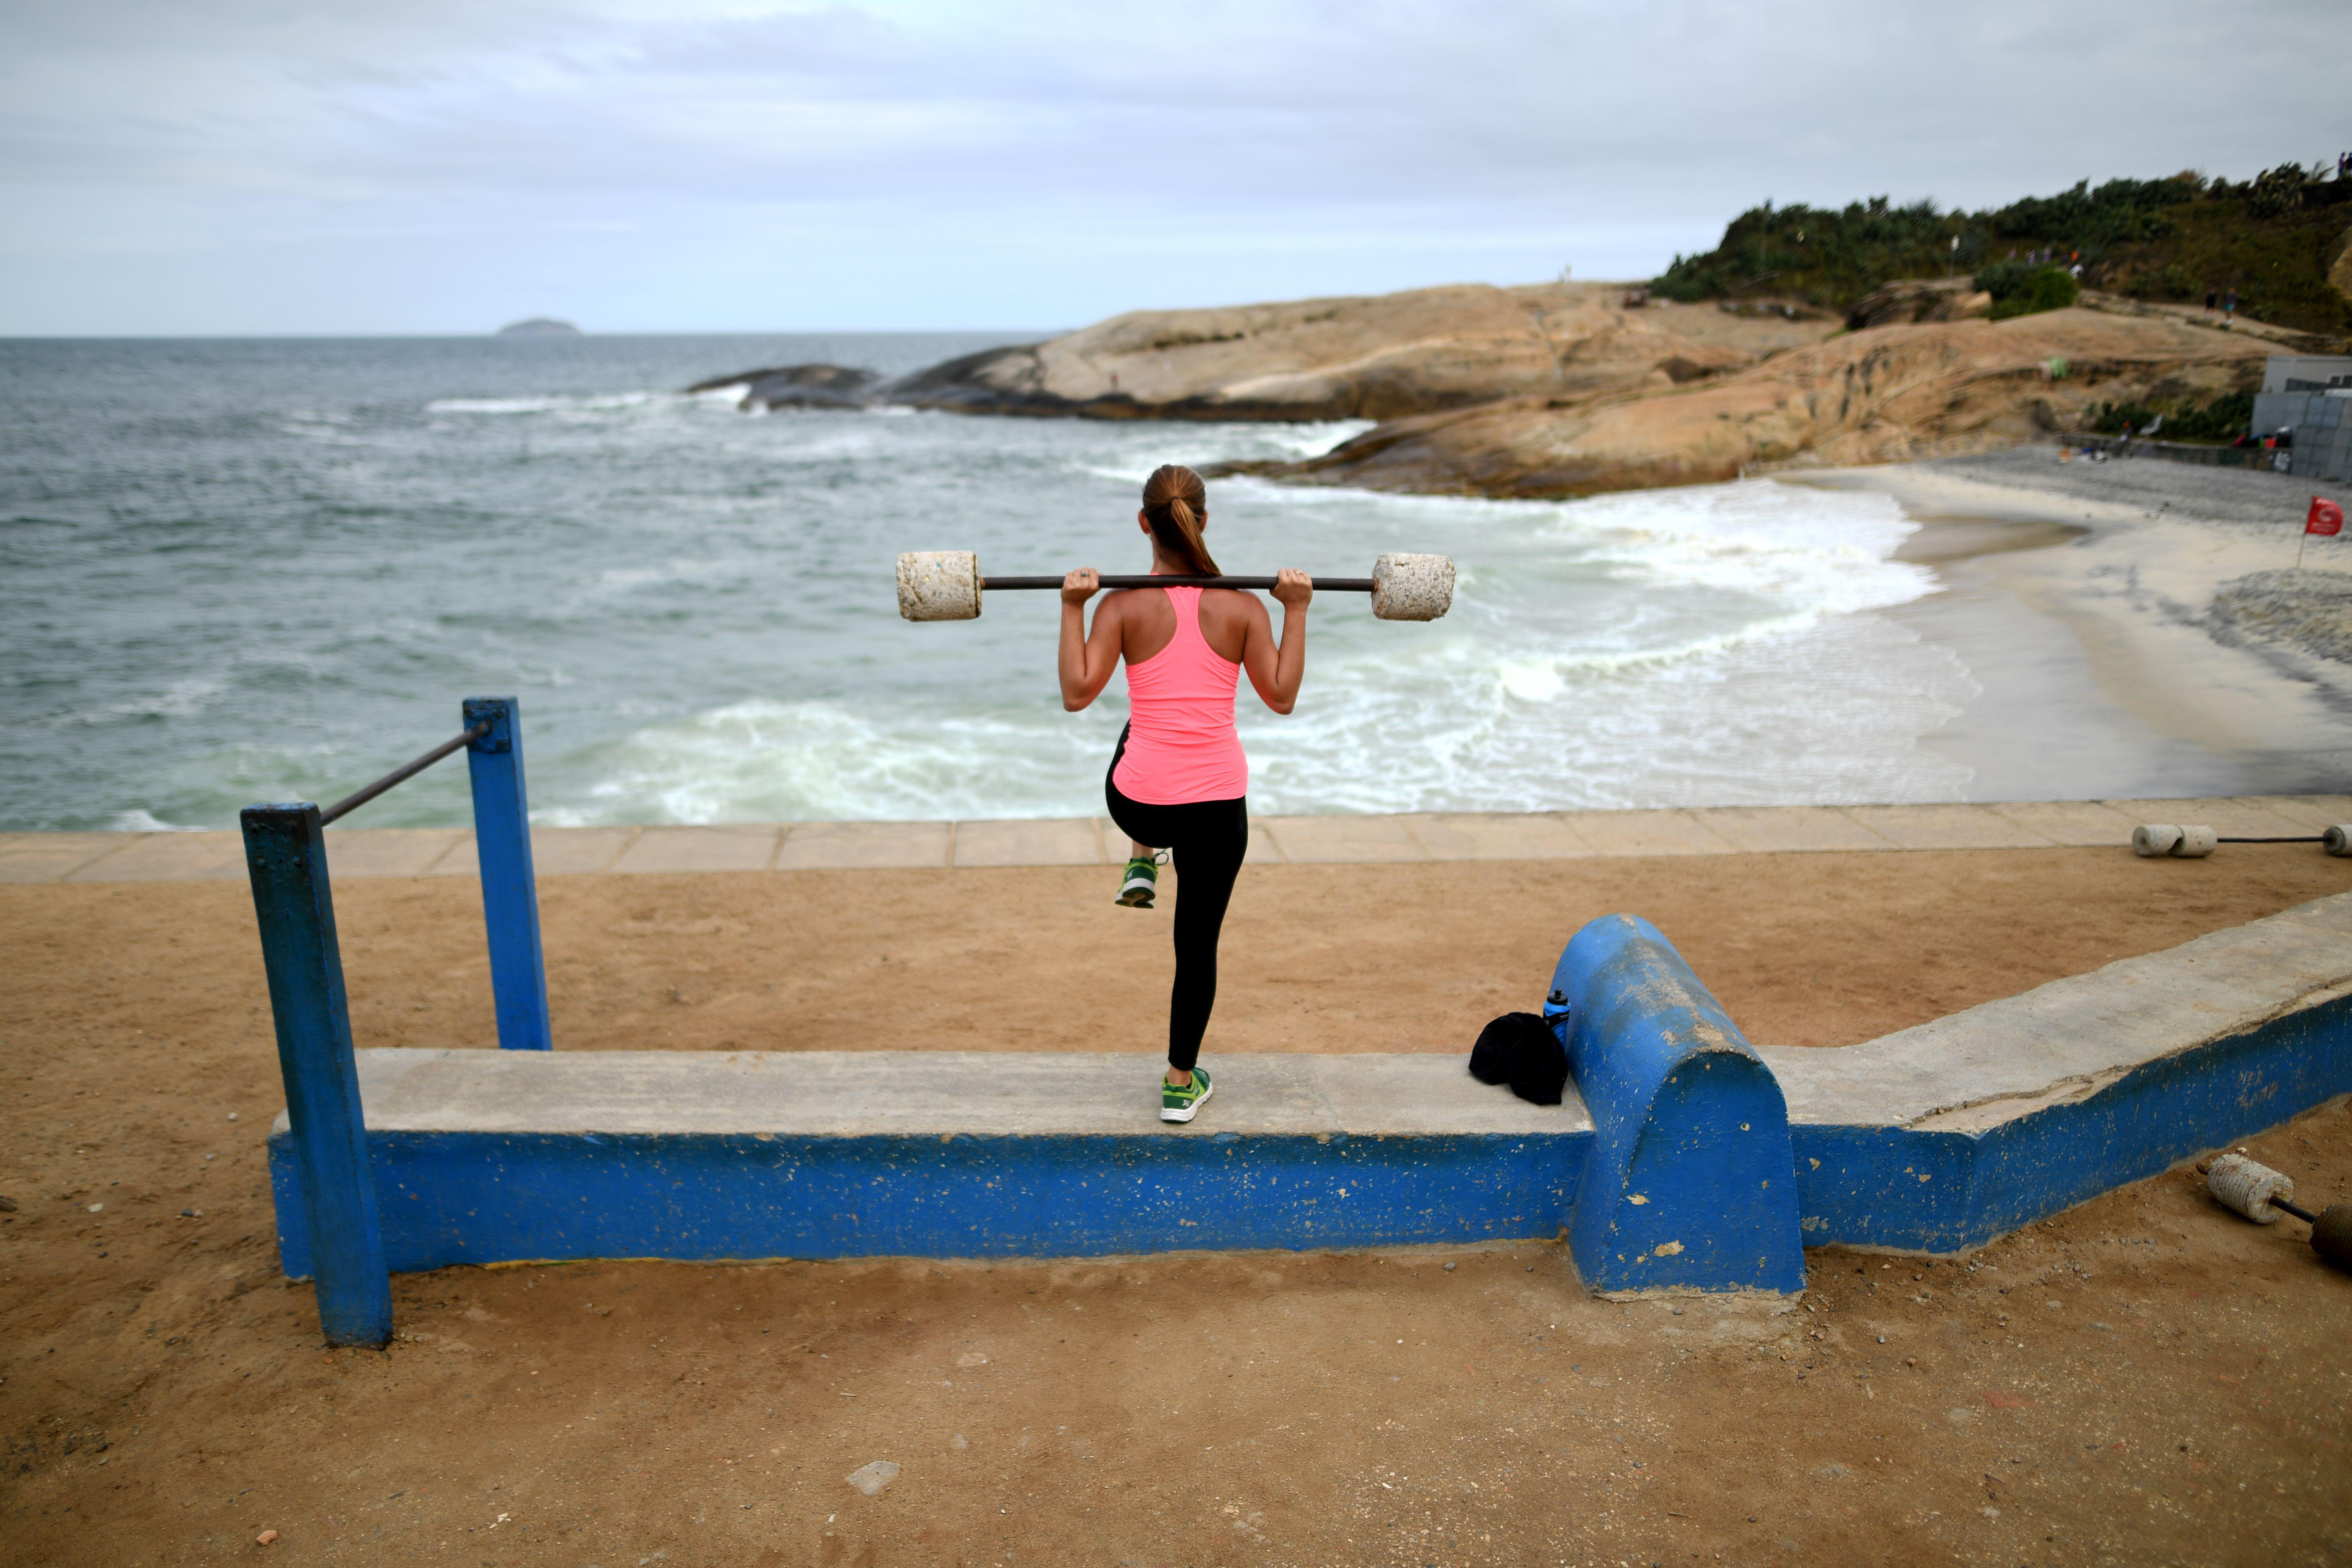 A woman lifts weights as she exercises at an outdoor improvised gym close to Ipanema beach in Rio de Janeiro on August 3, 2016.